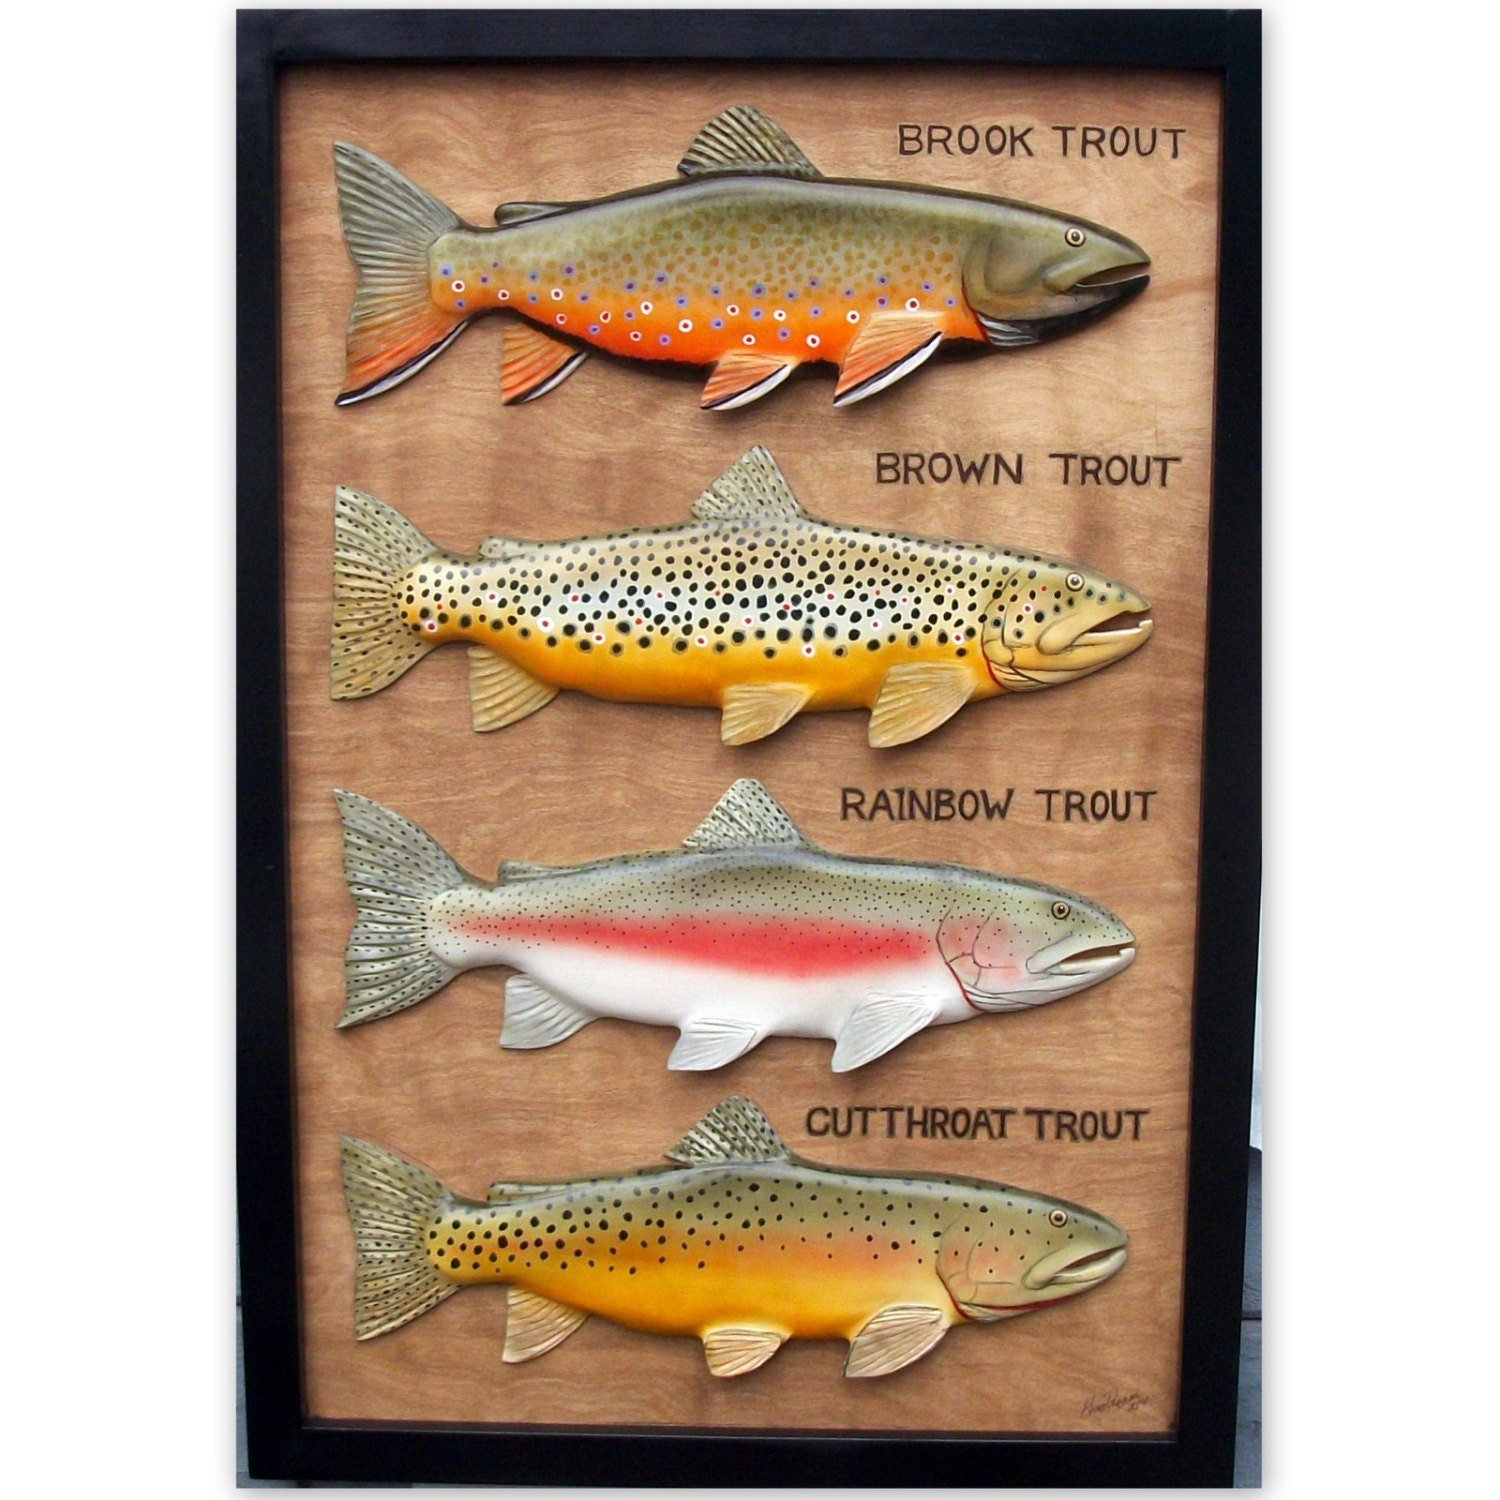 Brown brook rainbow cutthroat trout wood carvings trout for Fly fishing decor